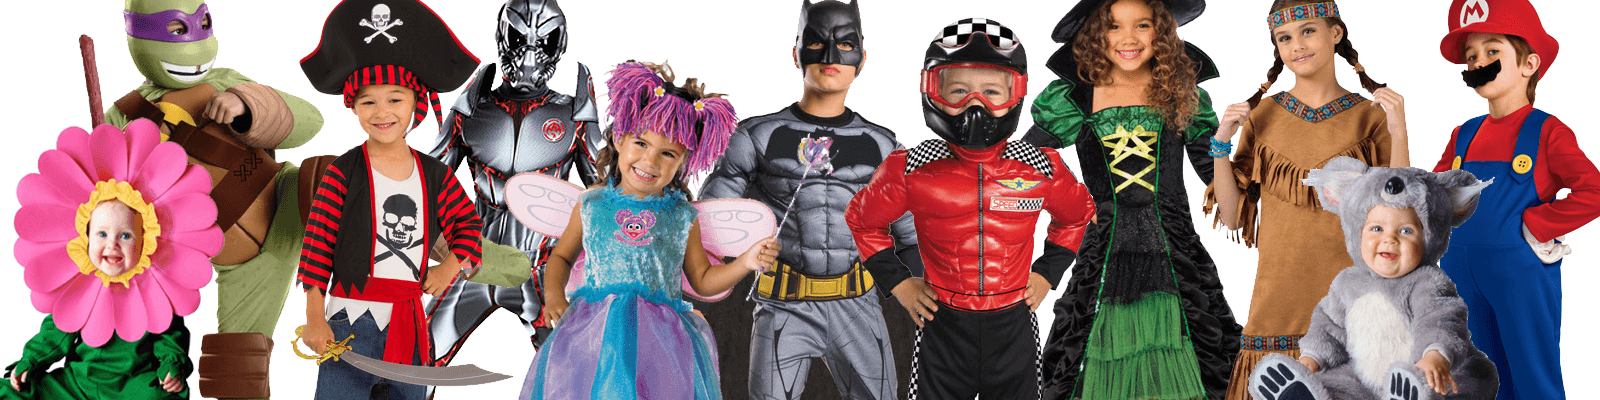 6105dbf66 Halloween Costumes for Kids are Here! Popular Kids Costumes and ...